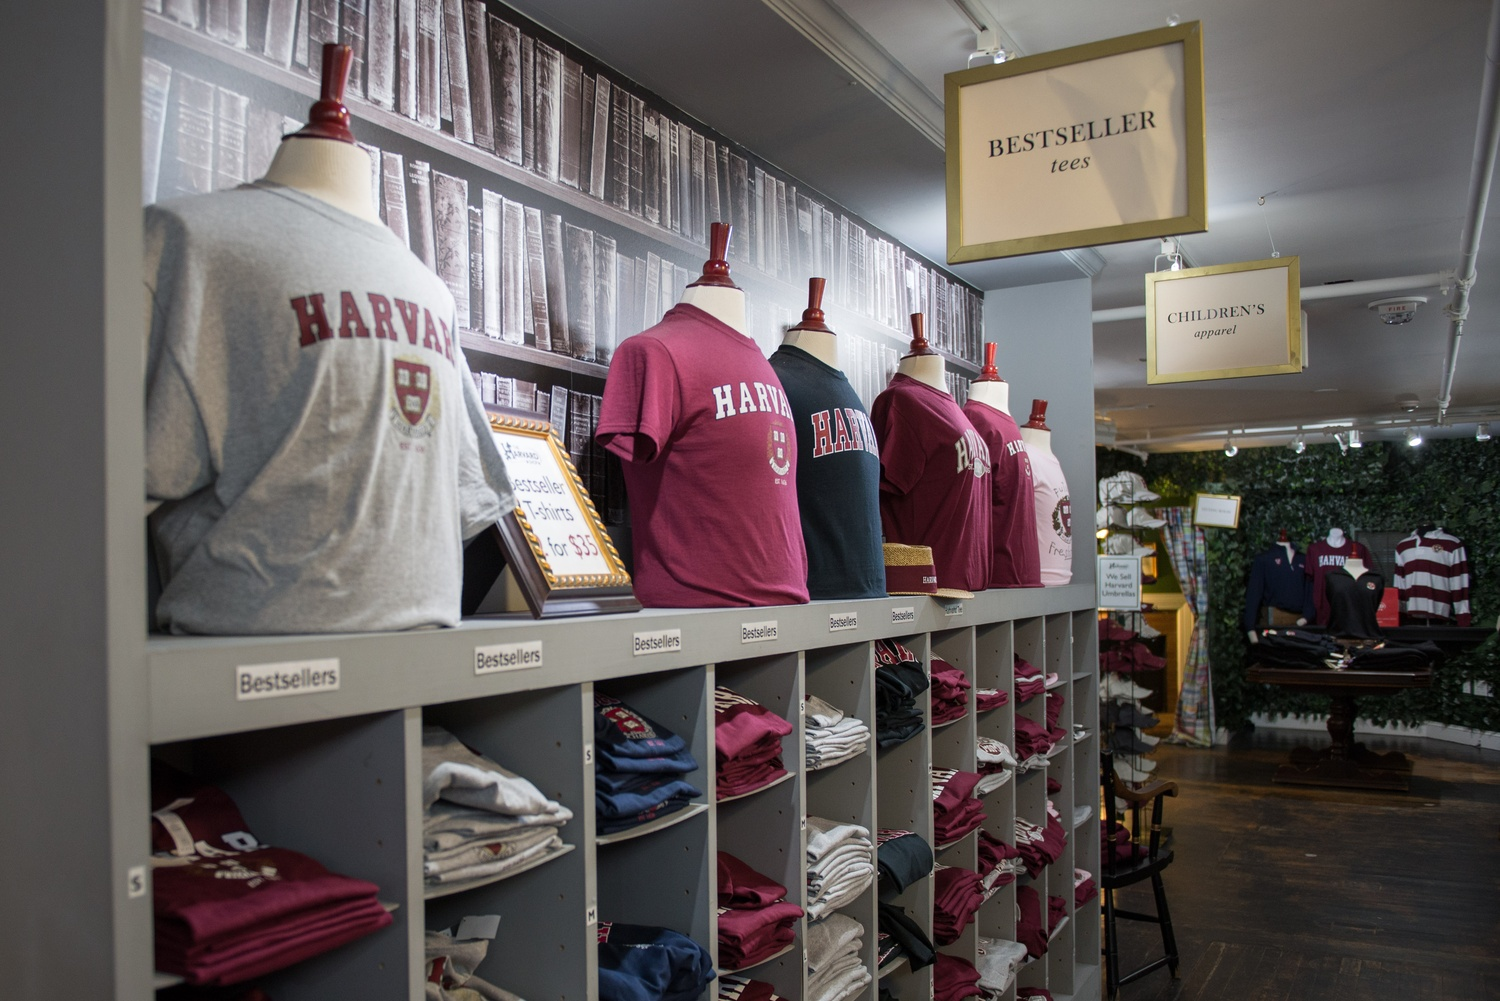 The Harvard Shop on Mt. Auburn Street sells a variety of Harvard memorabilia, from popular t-shirts to newer items like teddy bears and phone cases. The Shop moved in 2013 to its current location across from Lowell House.